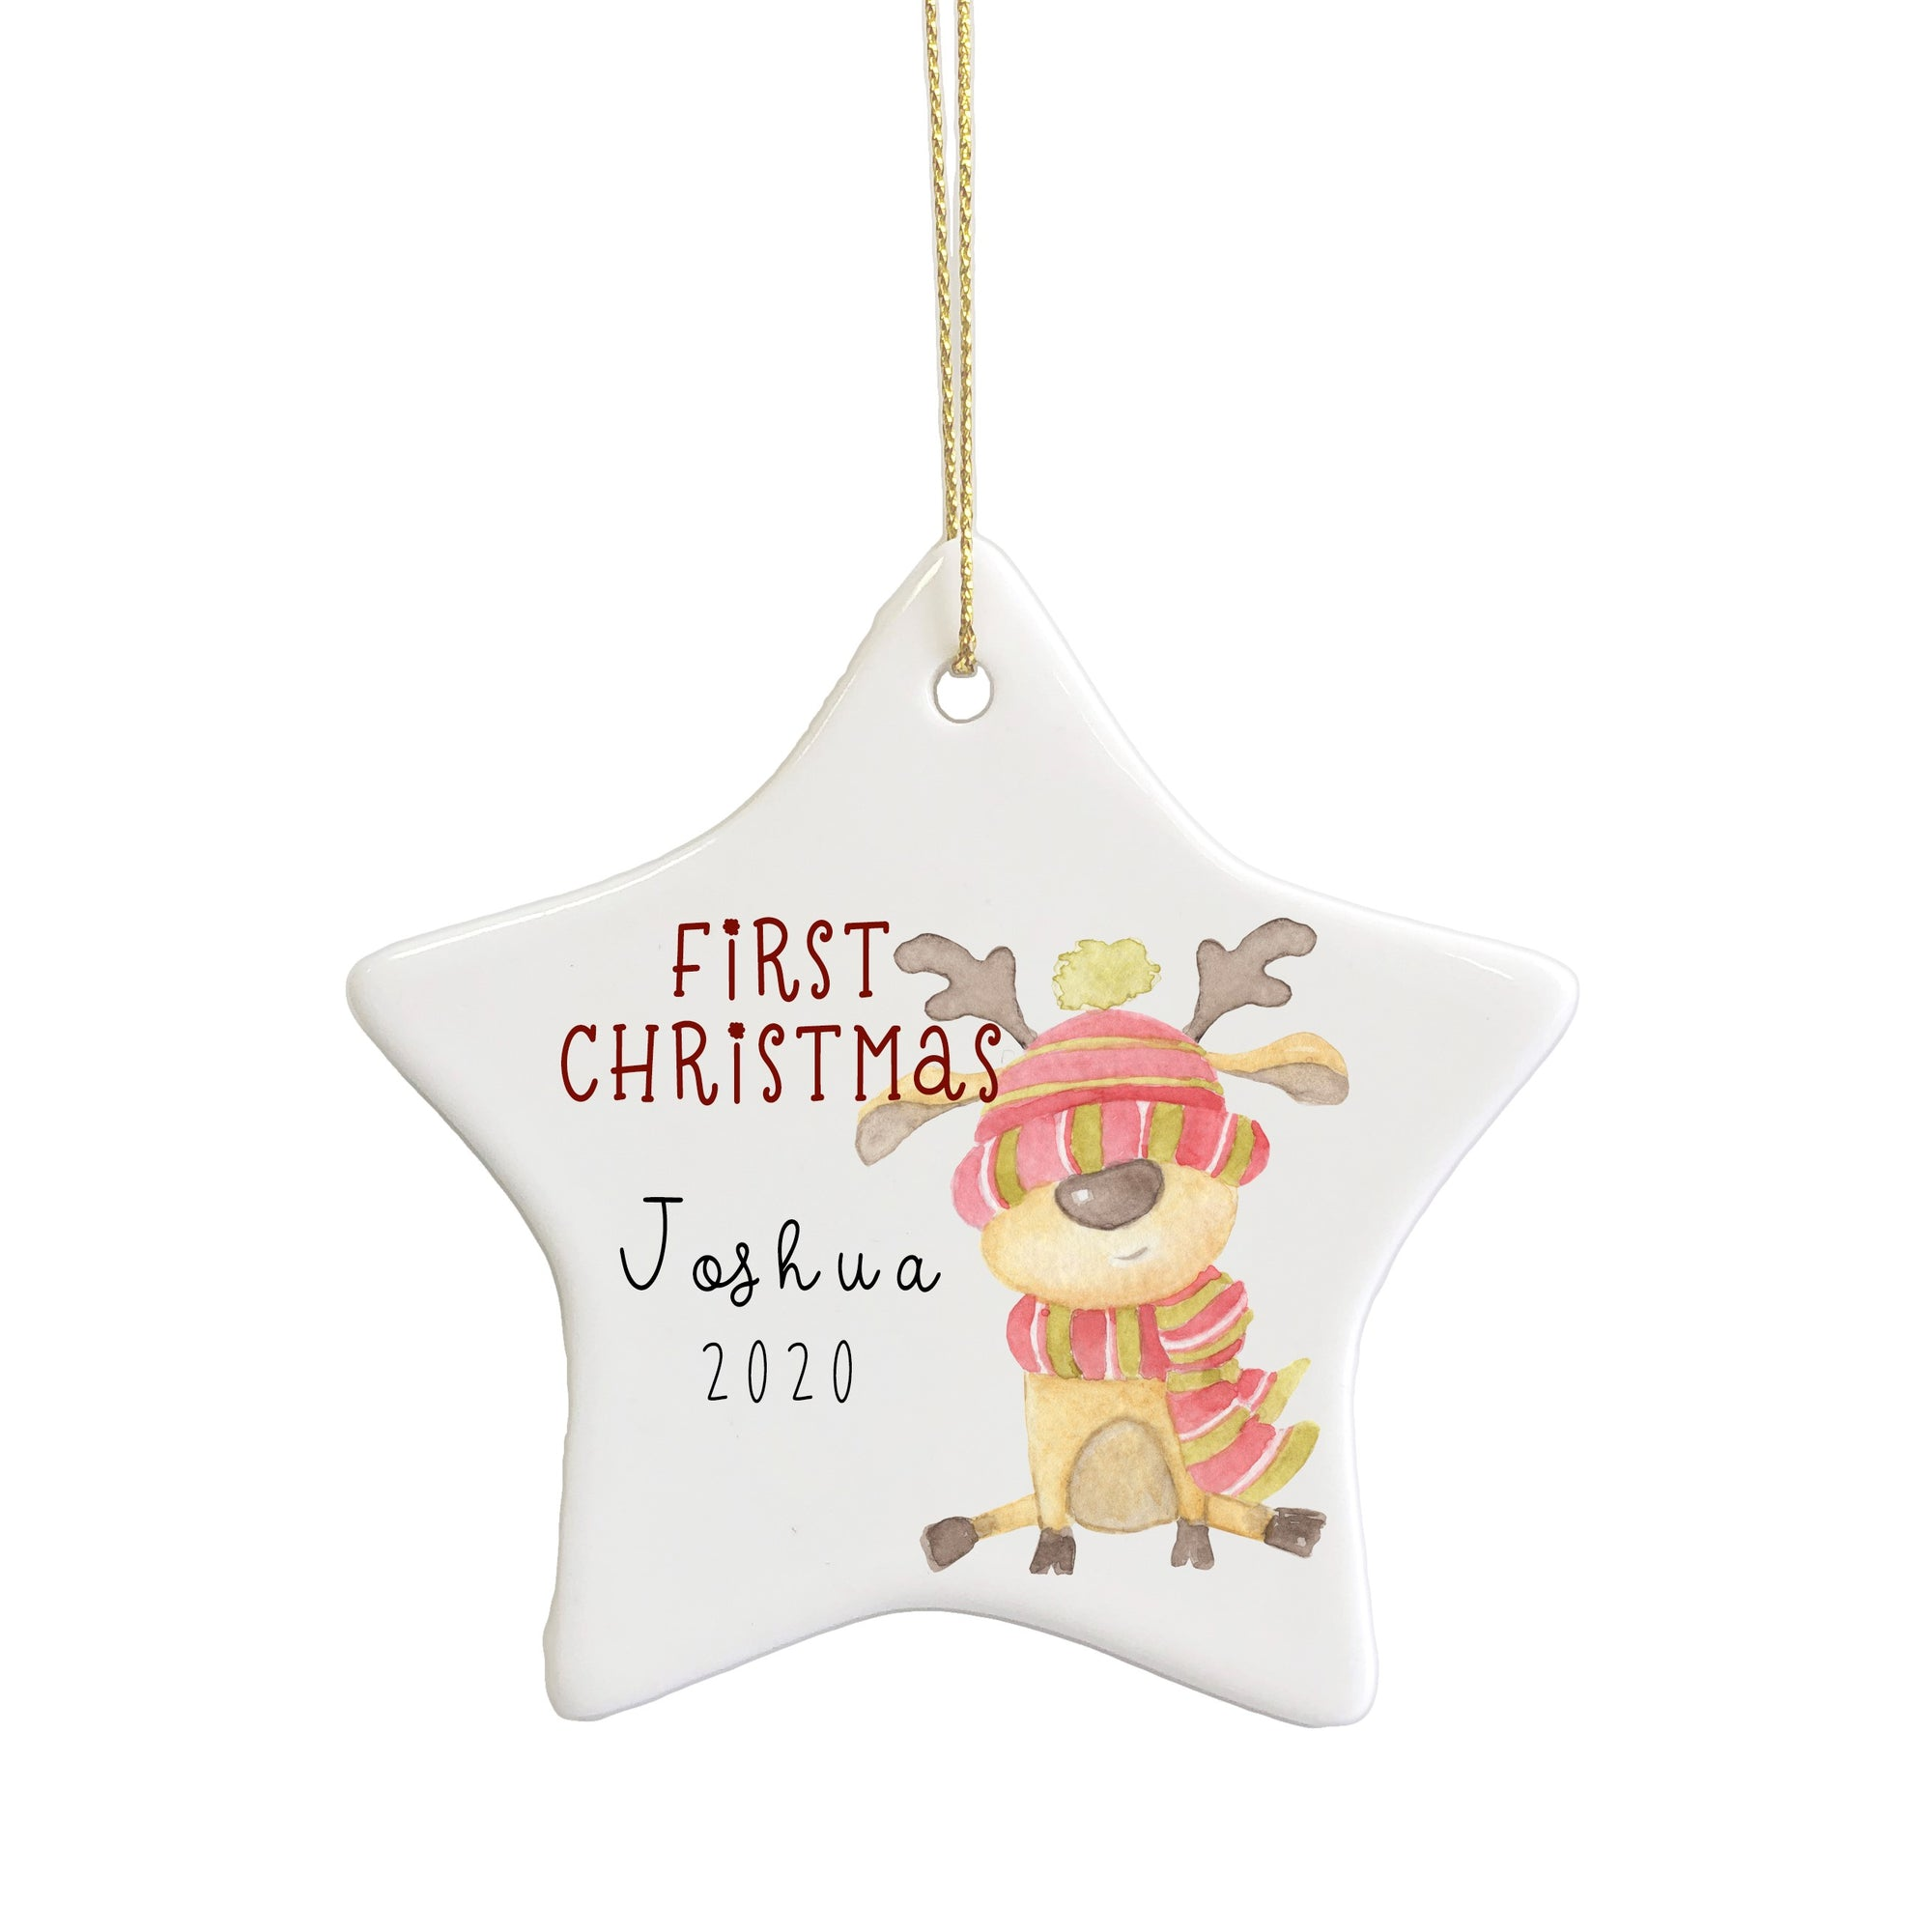 First Christmas ceramic star ornament